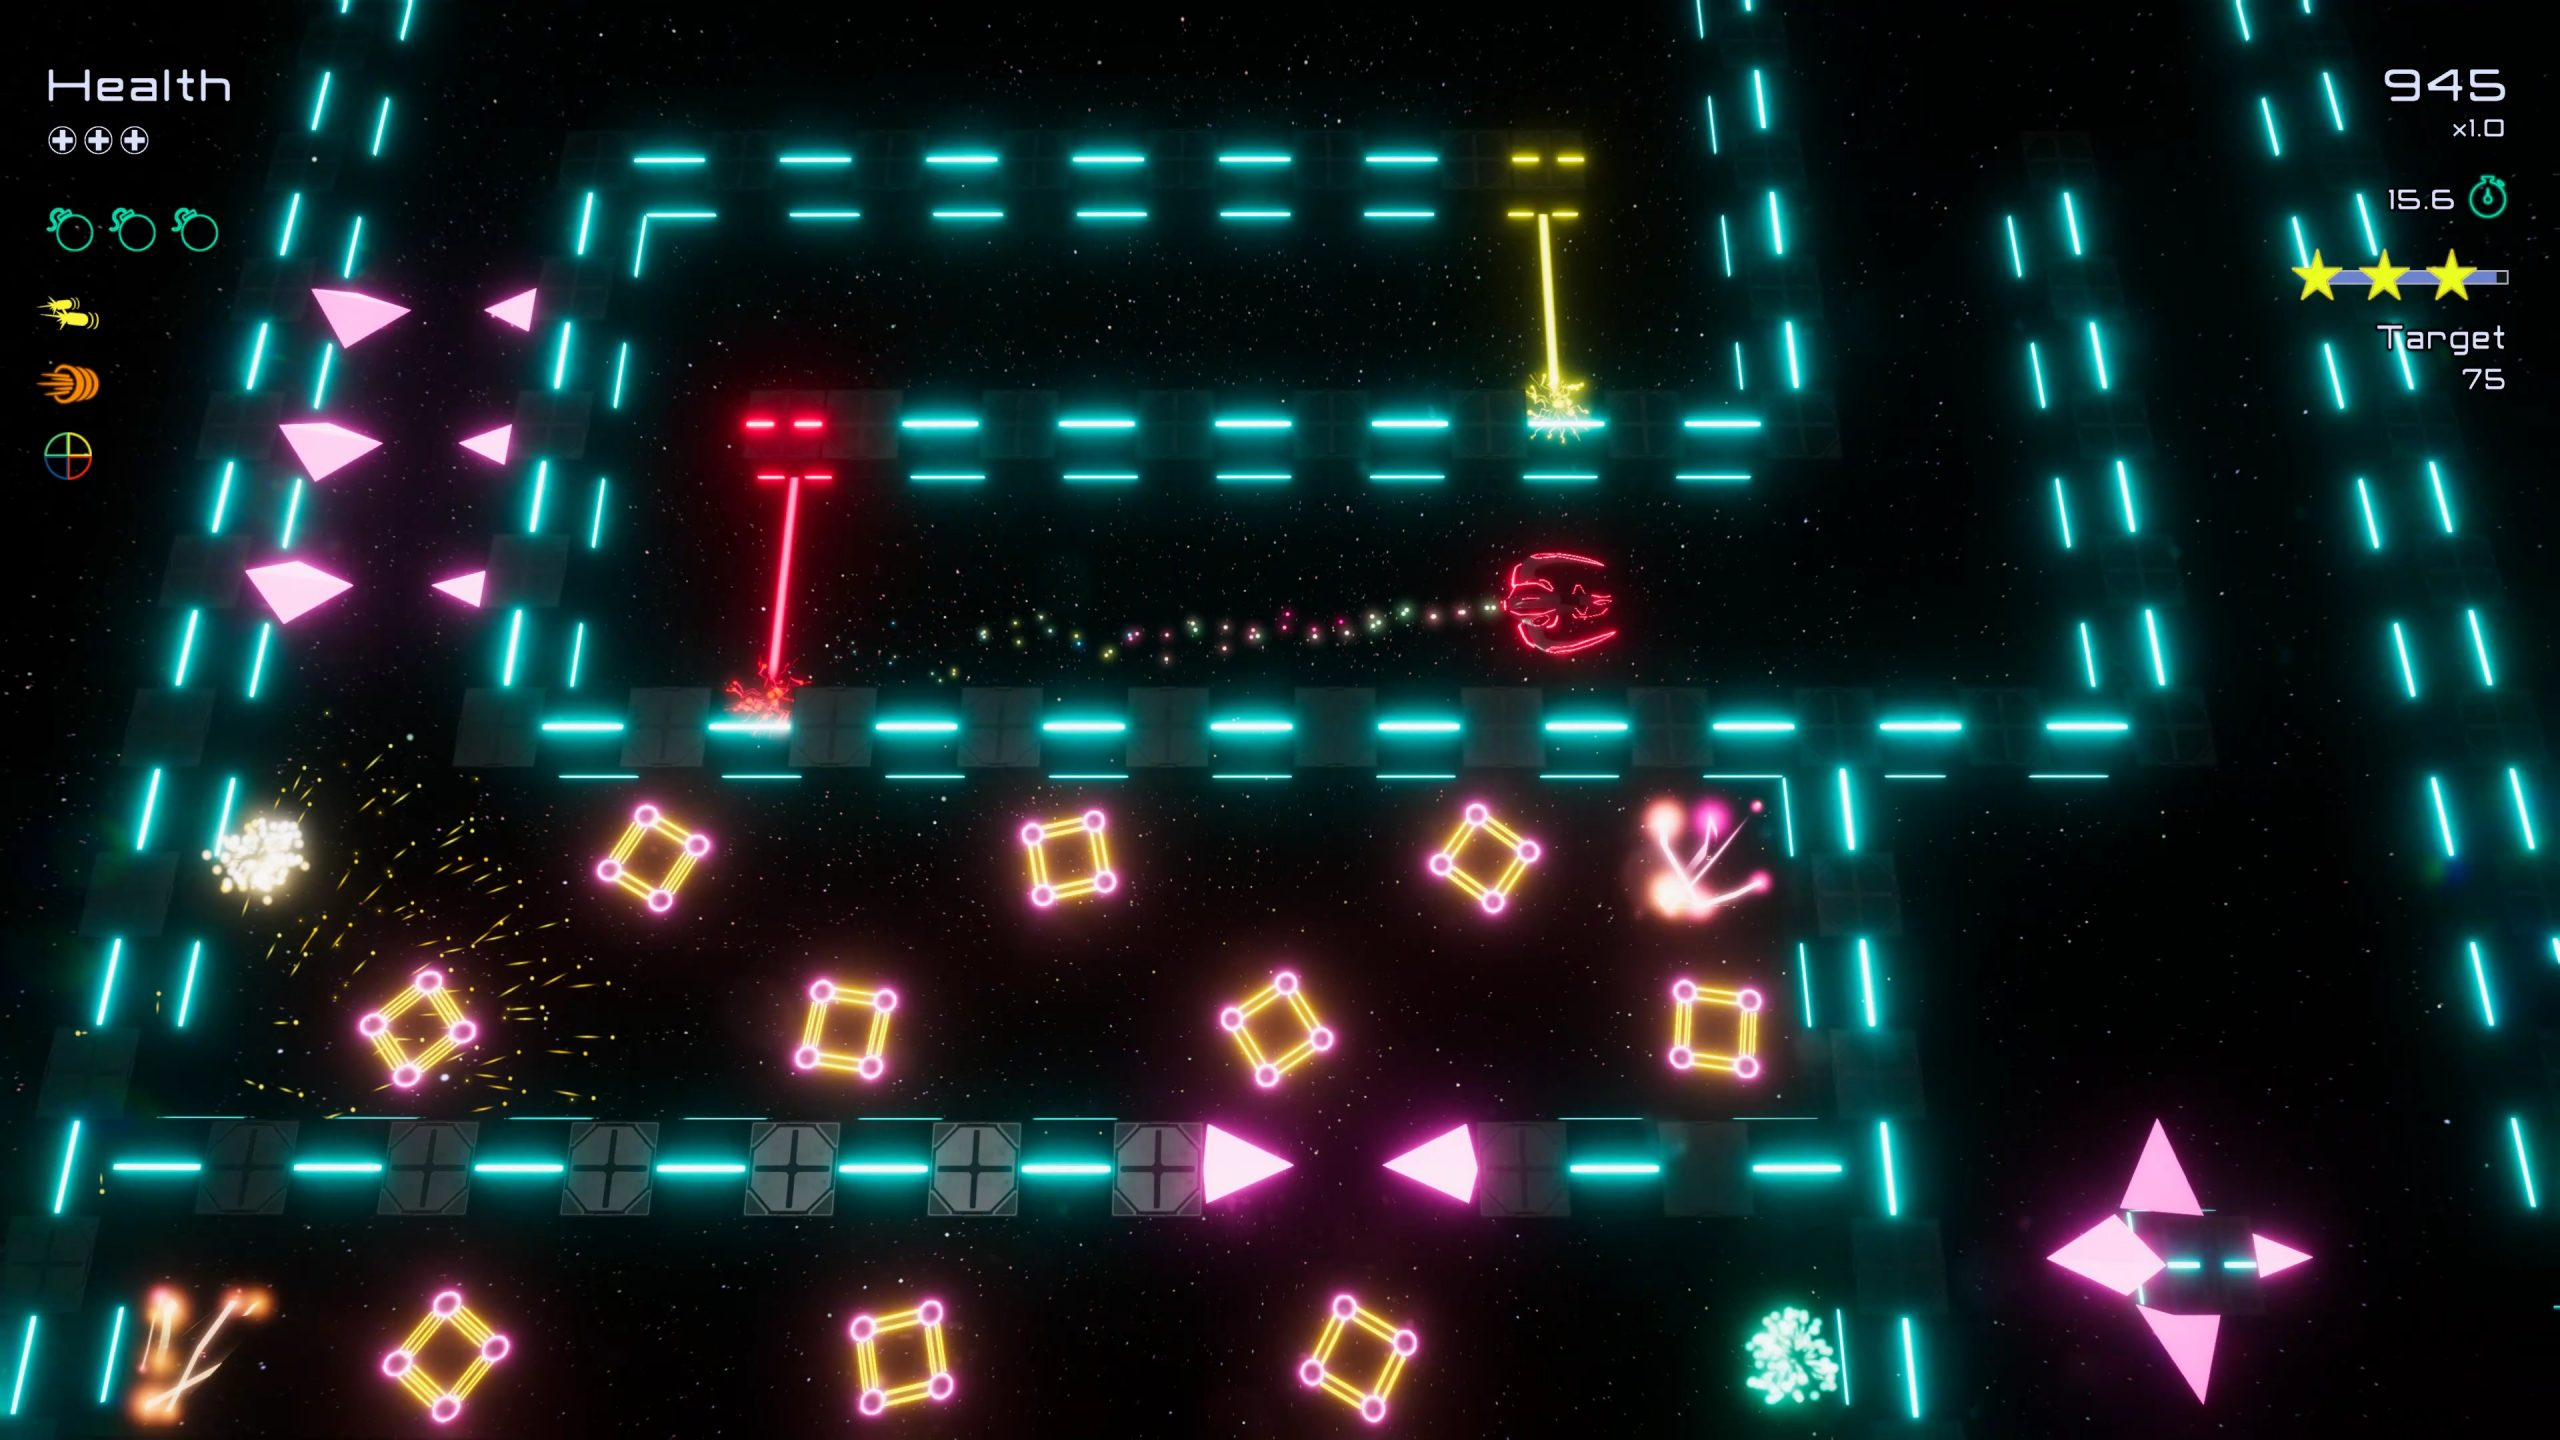 A screenshot from the game Funtime. It is a neon lit maze in space, there's pink spikes, yellow squares and red and yellow barriers as obstacles. A red spaceship is trying to escape.